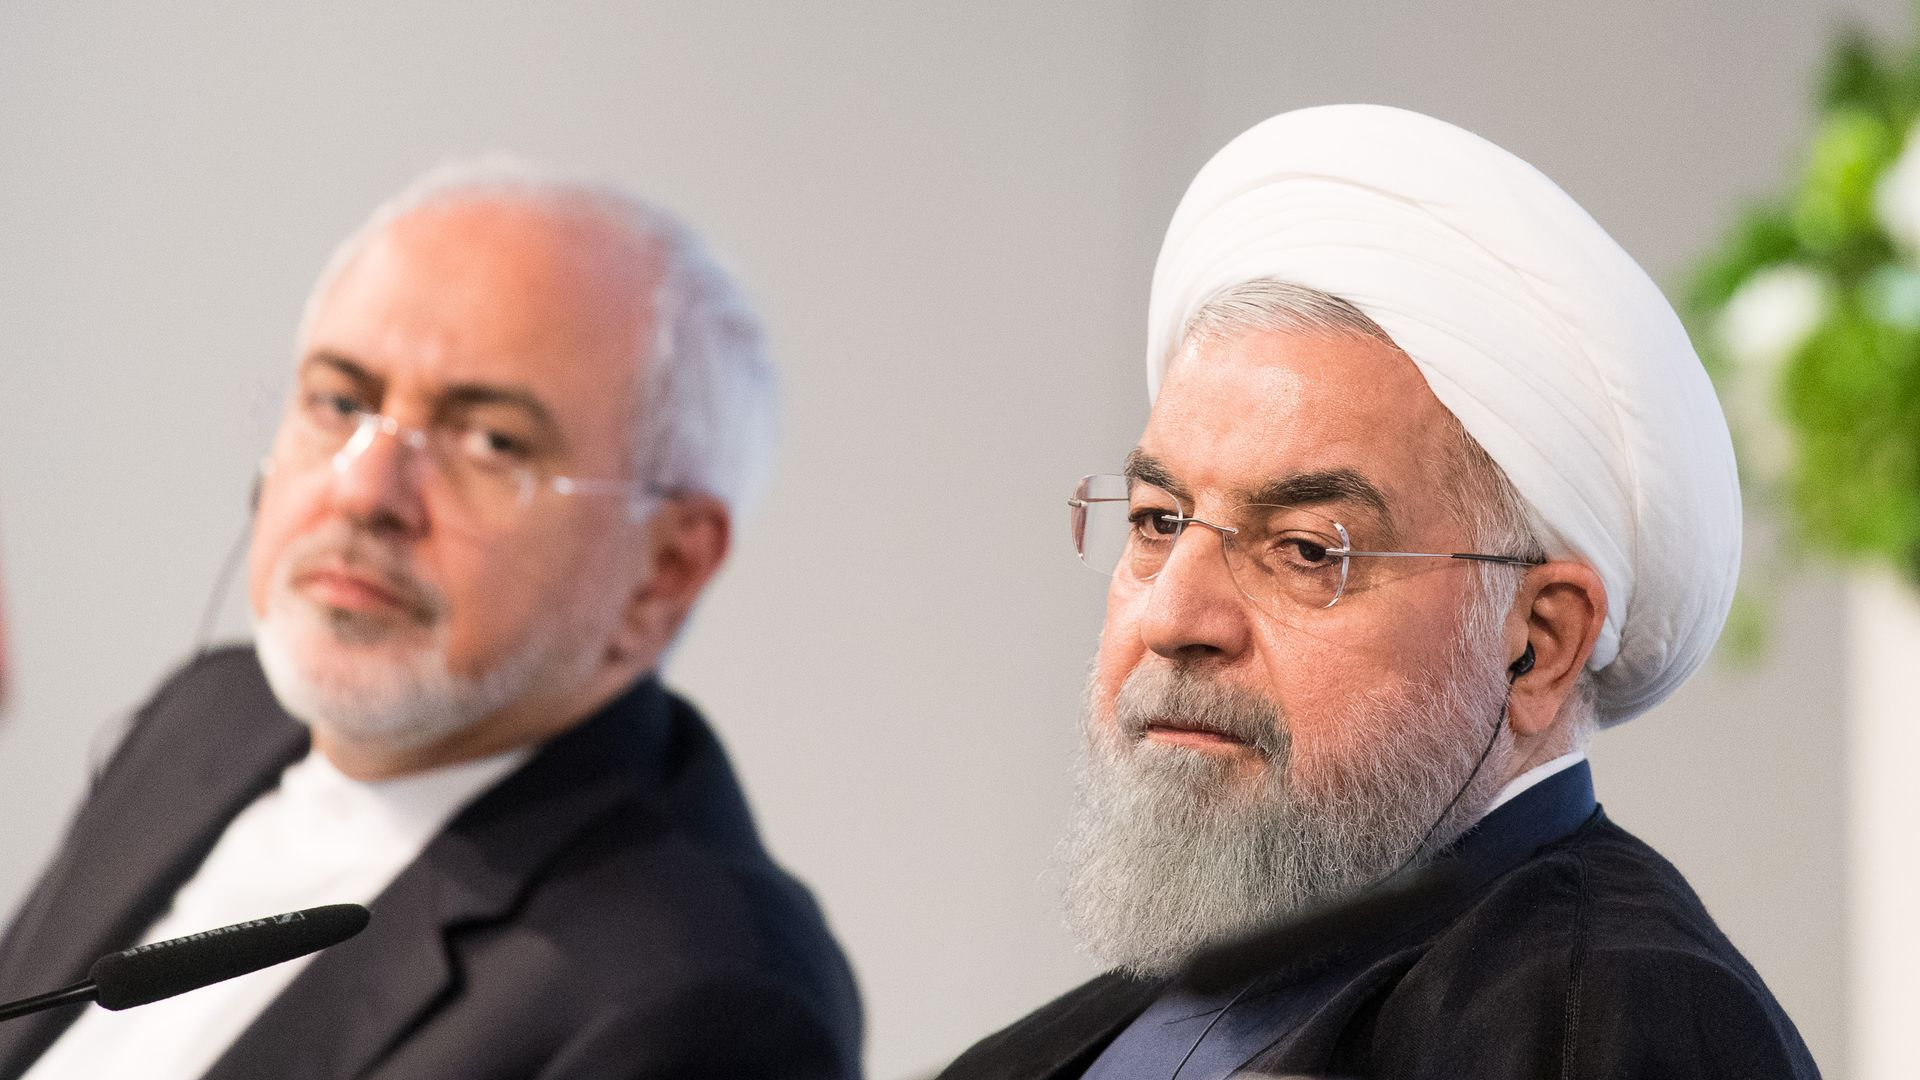 Iran's Foreign Minister Mohammad Javad Zarif and President Hassan Rouhani.